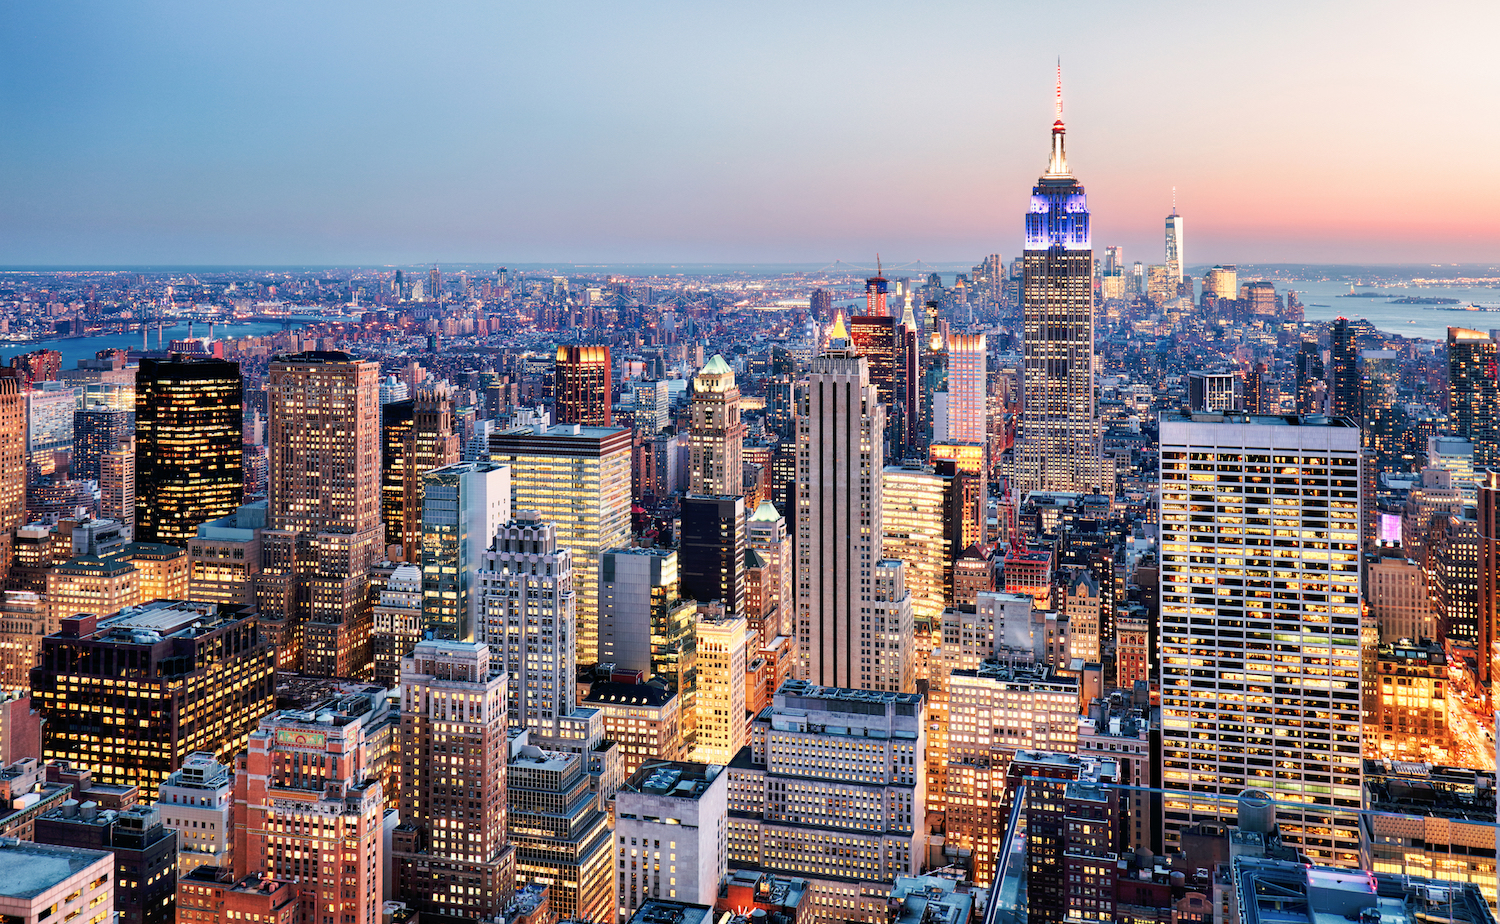 New York City declared second best city in the world